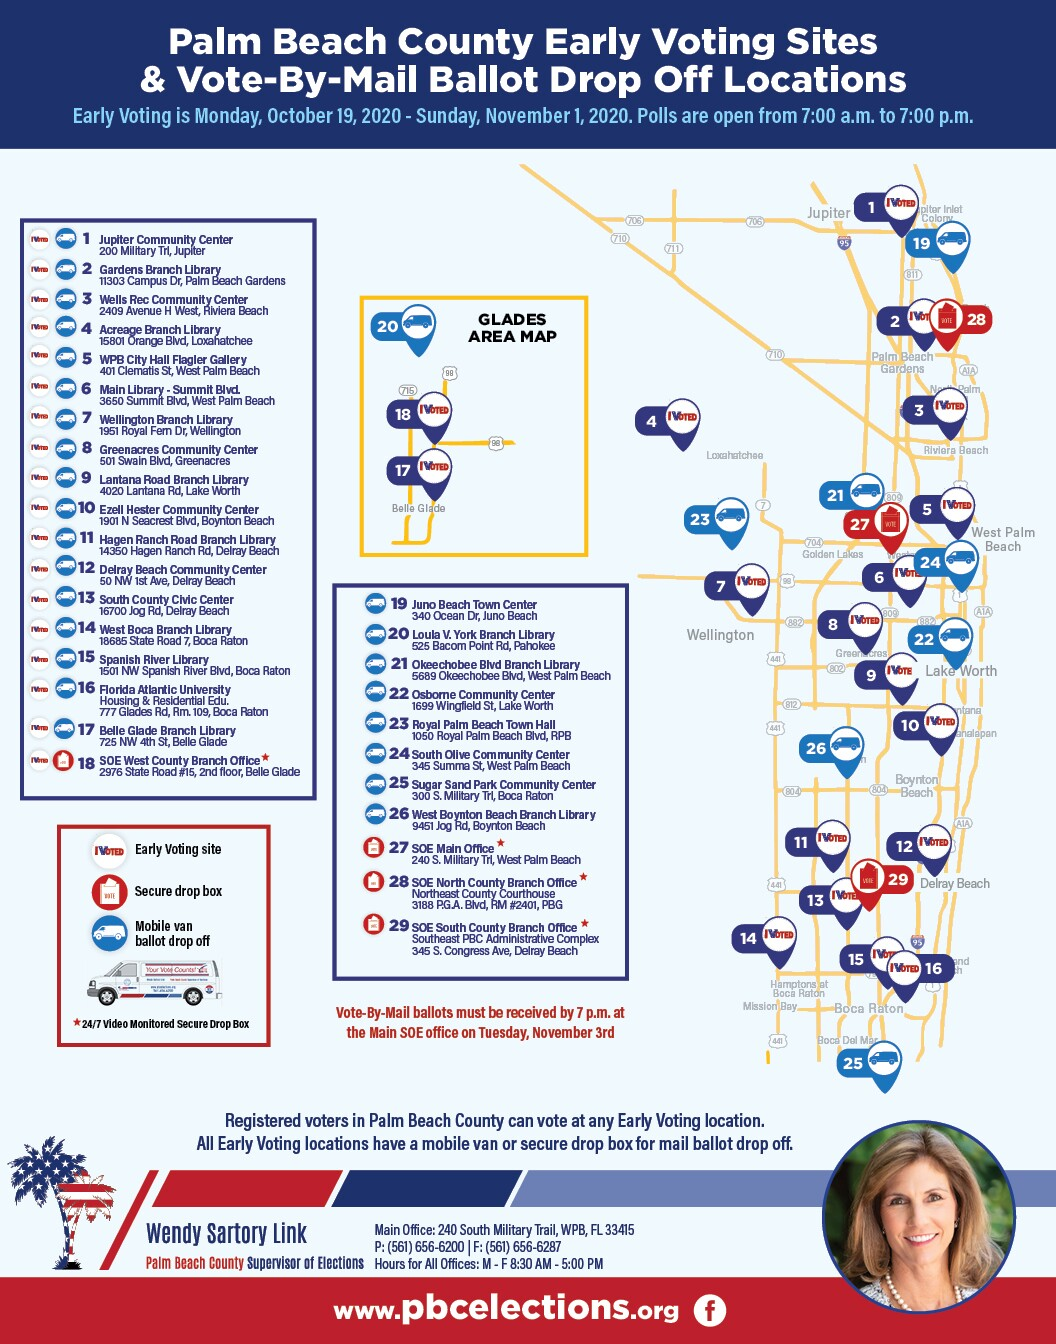 Palm Beach County Early Voting Sites and Vote-By-Mail Drop Off Locations Map